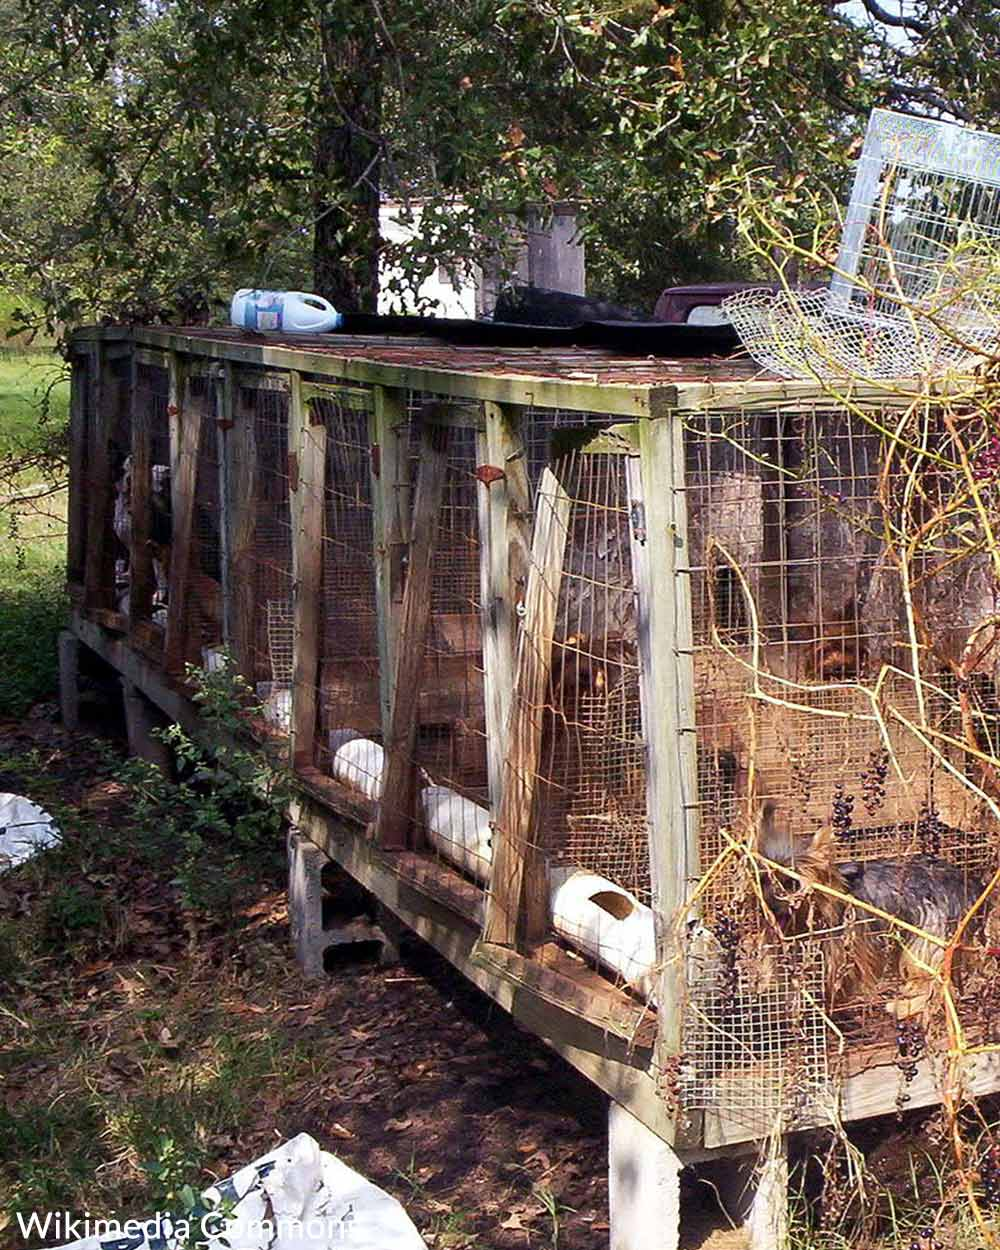 Packed tightly in kennels, animals face a grim existence in puppy mills.